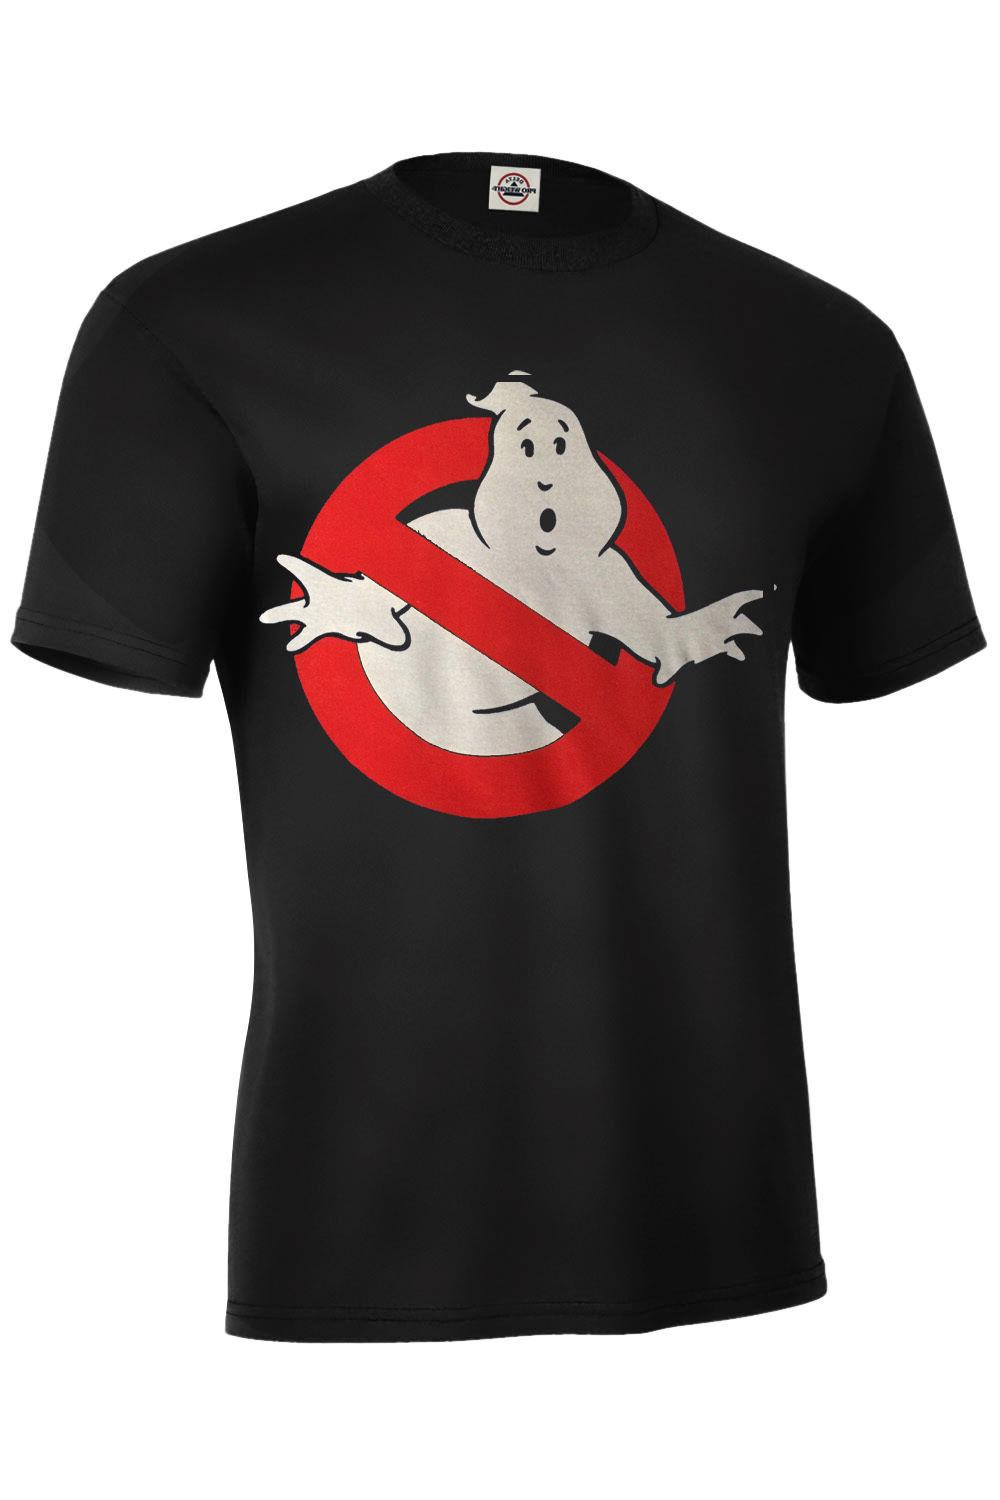 ghostbusters logo assorted colors t shirt sizes